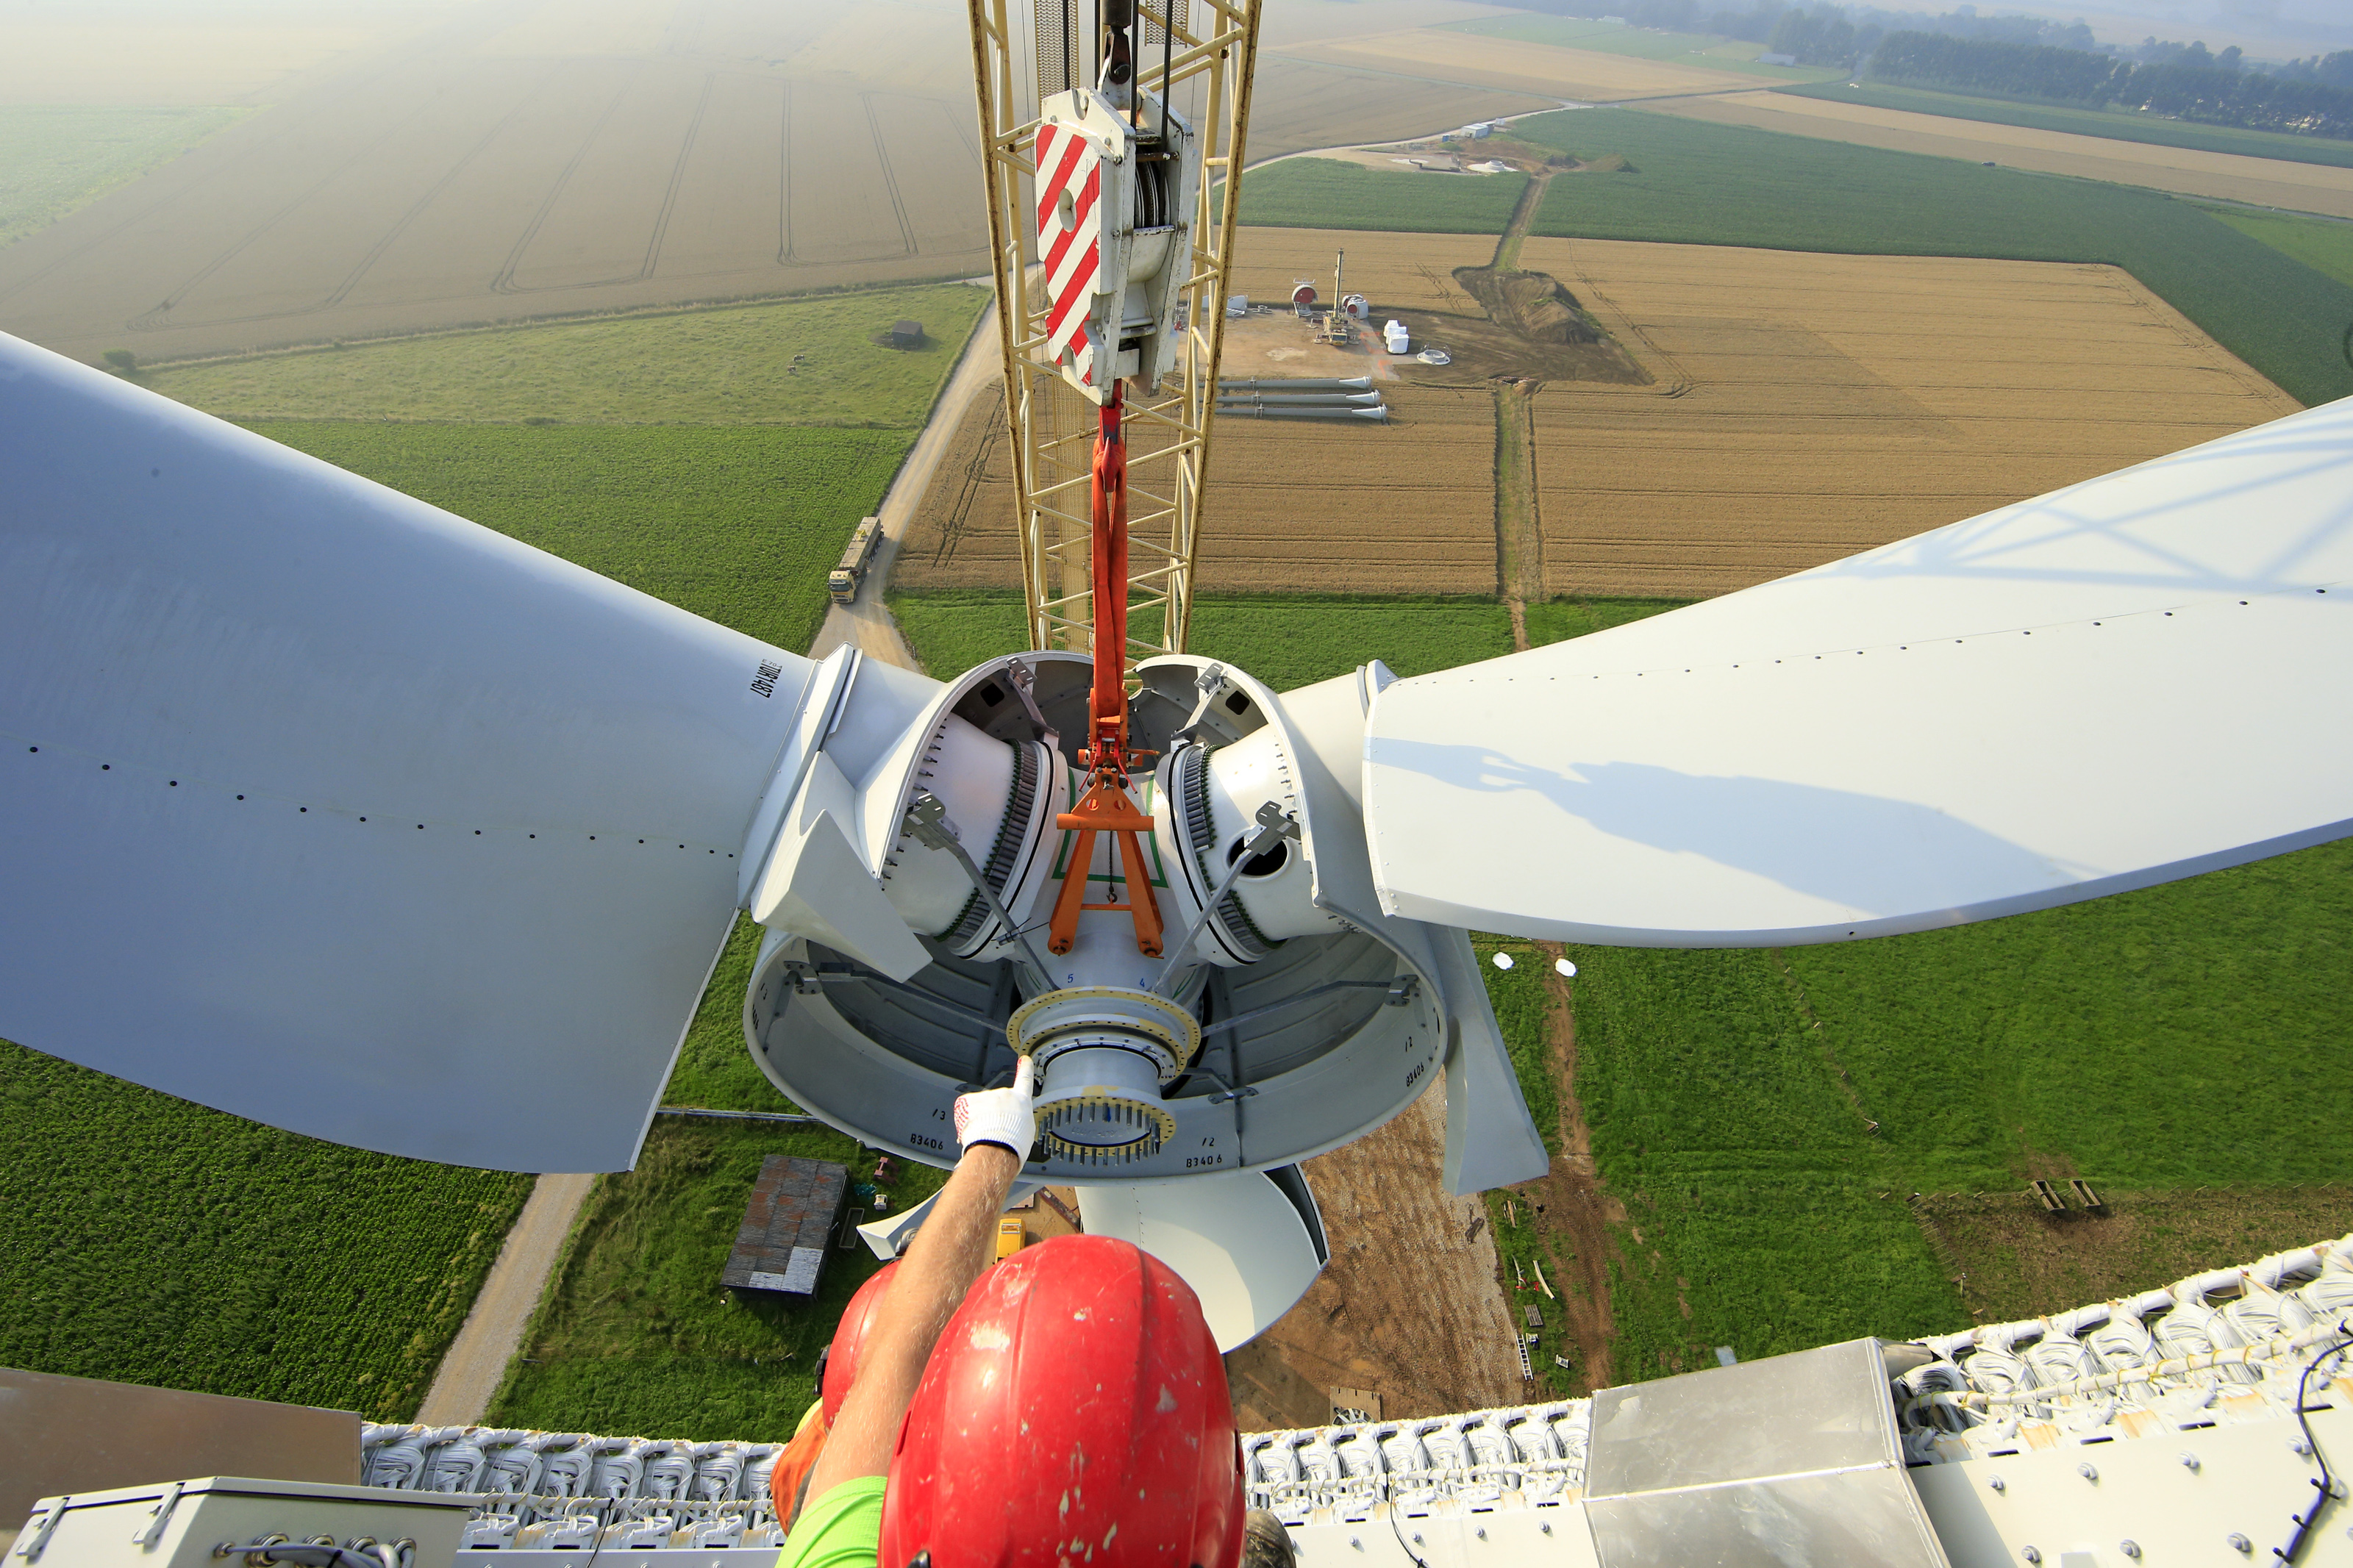 A worker installed in the nacelle controls the assembling of the rotor hub of an E-70 wind turbine manufactured by German company Enercon for La Compagnie du Vent during its installation at a wind farm in Meneslies, Picardie region